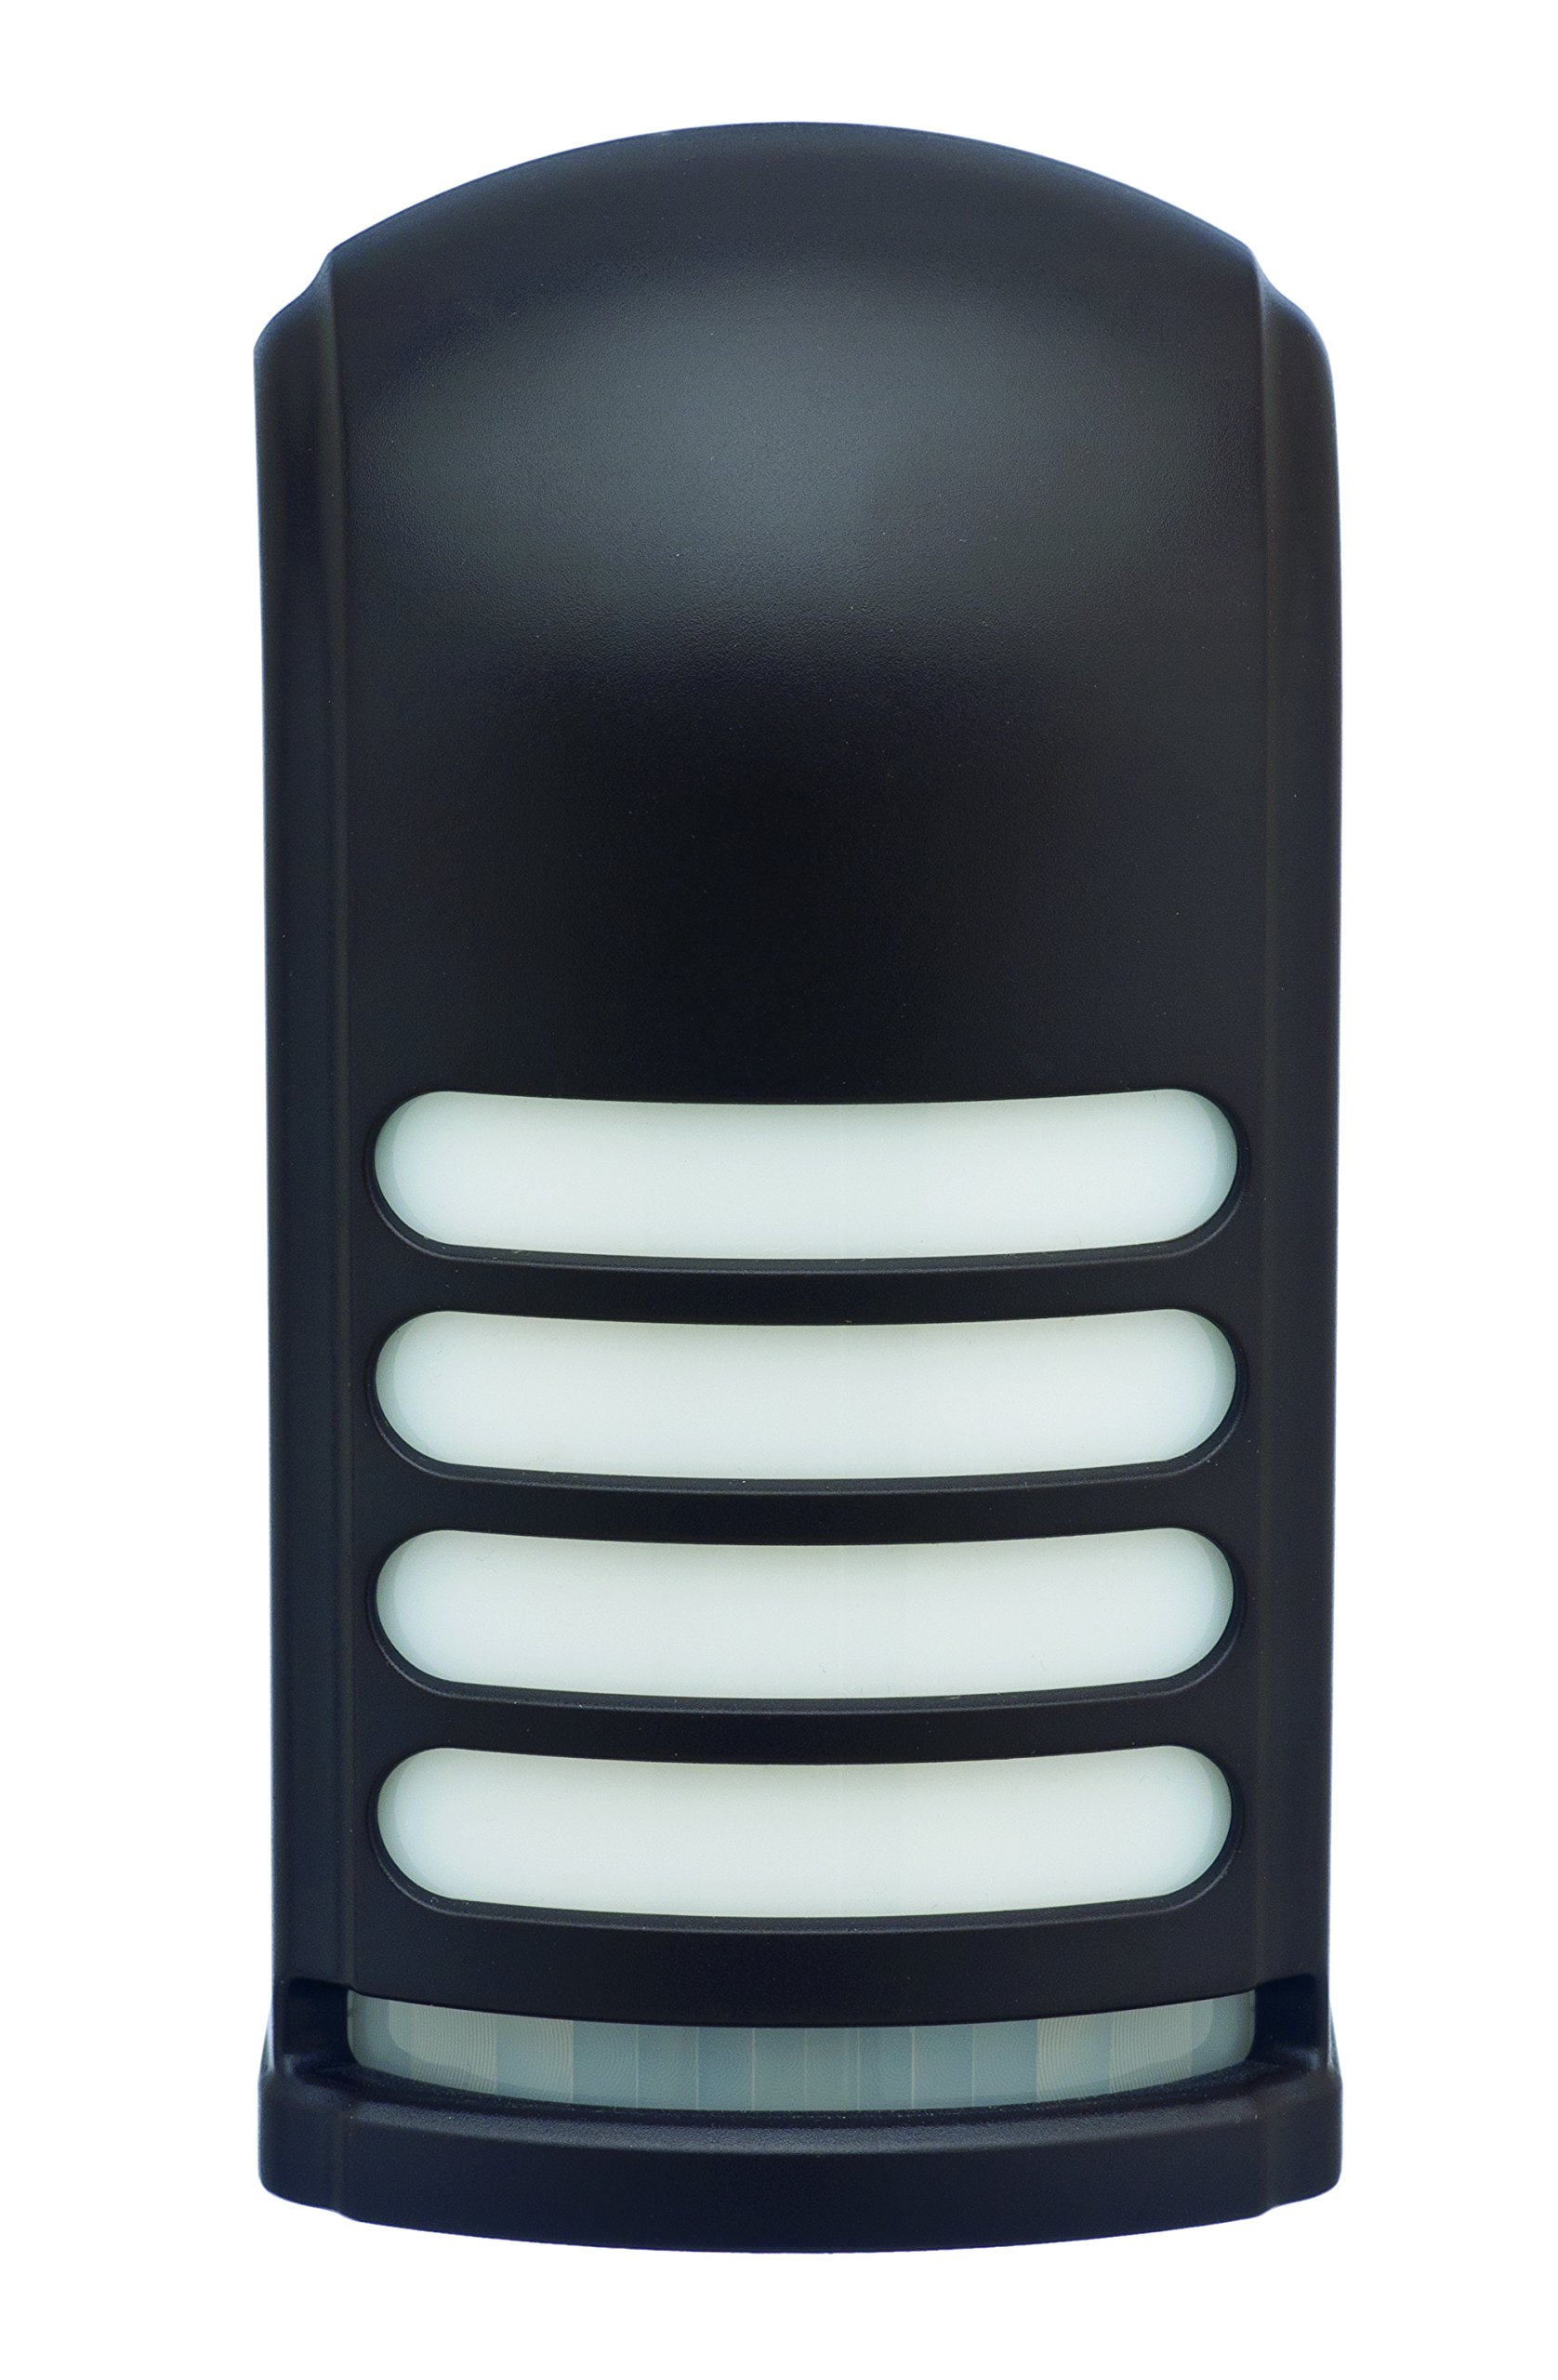 Battery Operated Motion Activated LED Deck and Stair Light, Bronze - Decorative battery light provides accent lighting all night long and brightens with motion to illuminate your deck Custom designed motion sensor covers 160 digress by 30' Choose between maximum light output when motion is detected or a power saving level to extend battery life - patio, outdoor-lights, outdoor-decor - 81Lo%2Bma0gJL -